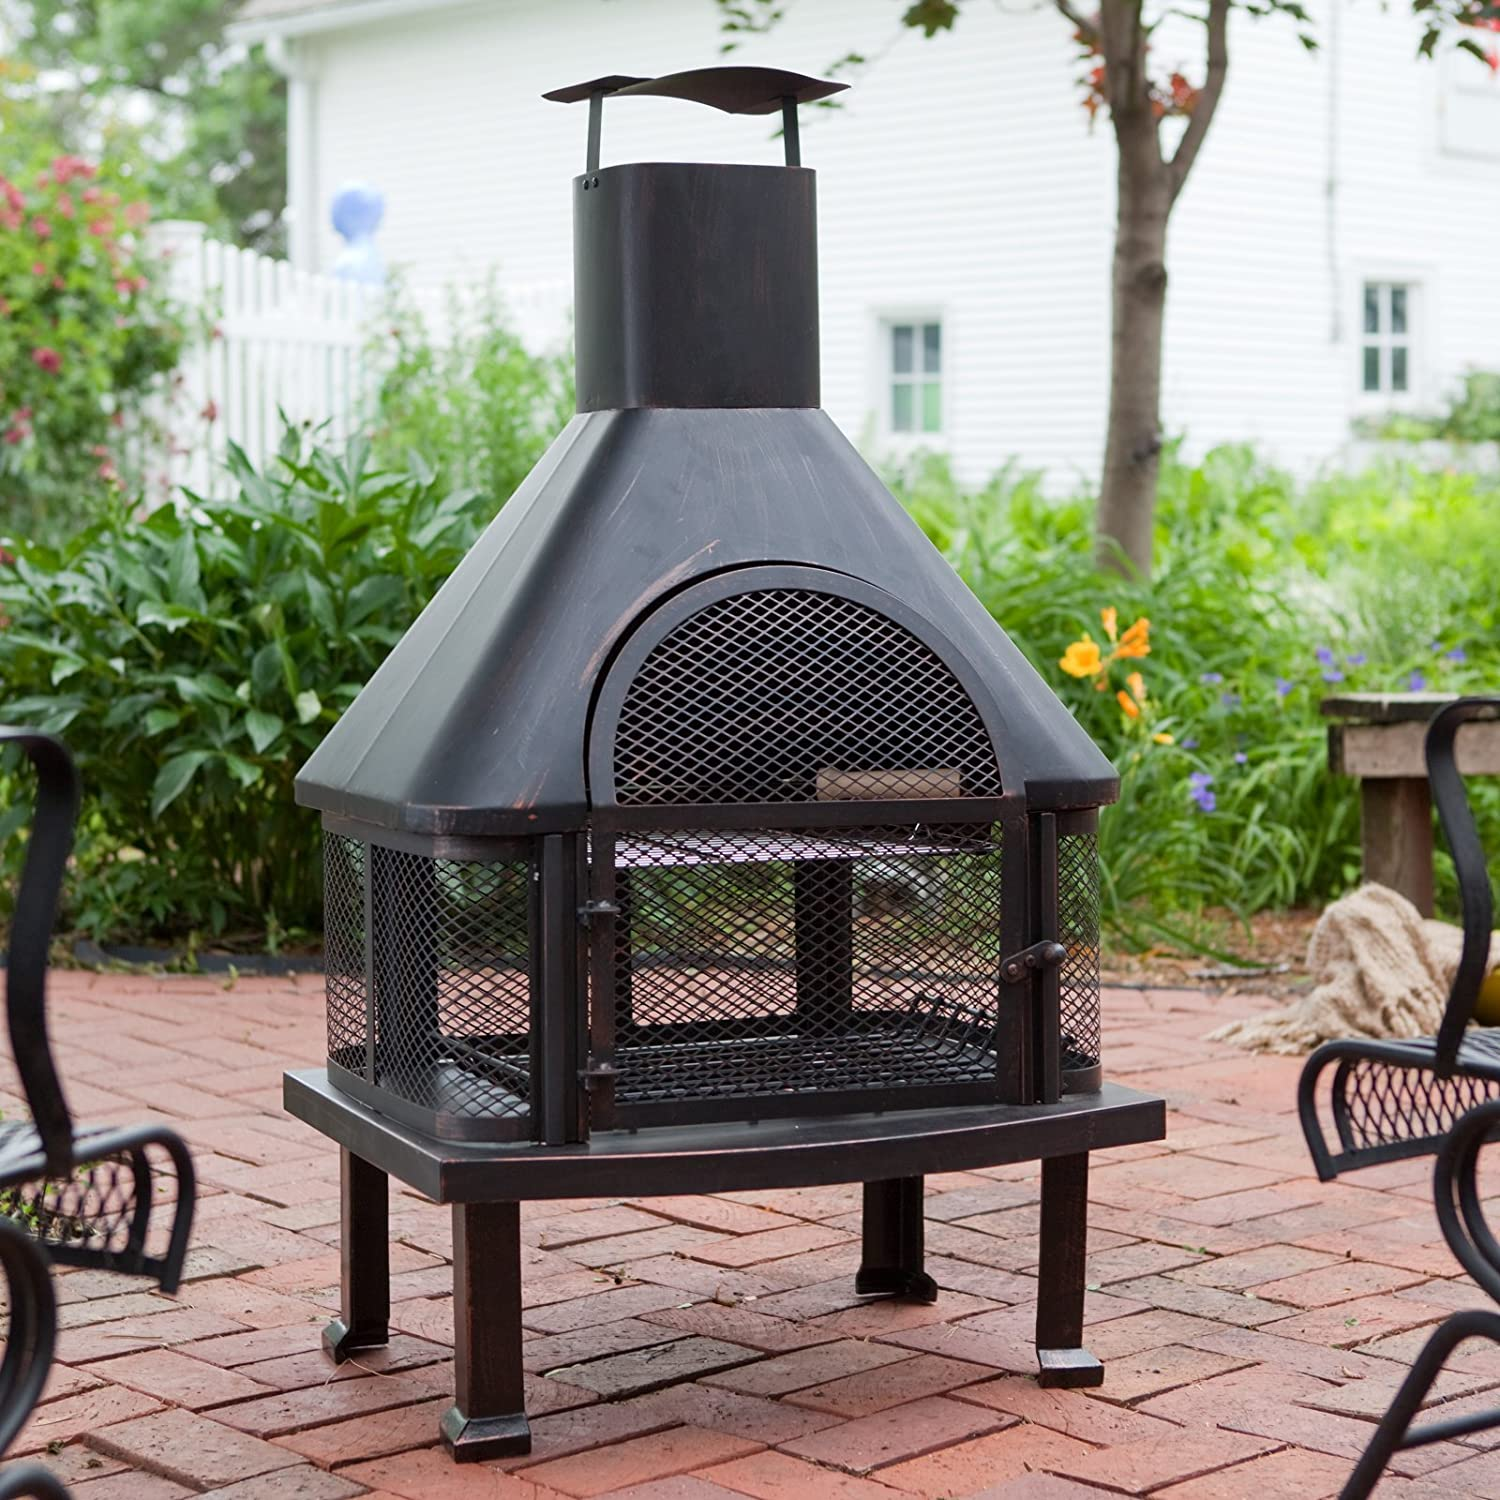 for elegant porch fire flue result with outdoor chimney of pit fireplace image